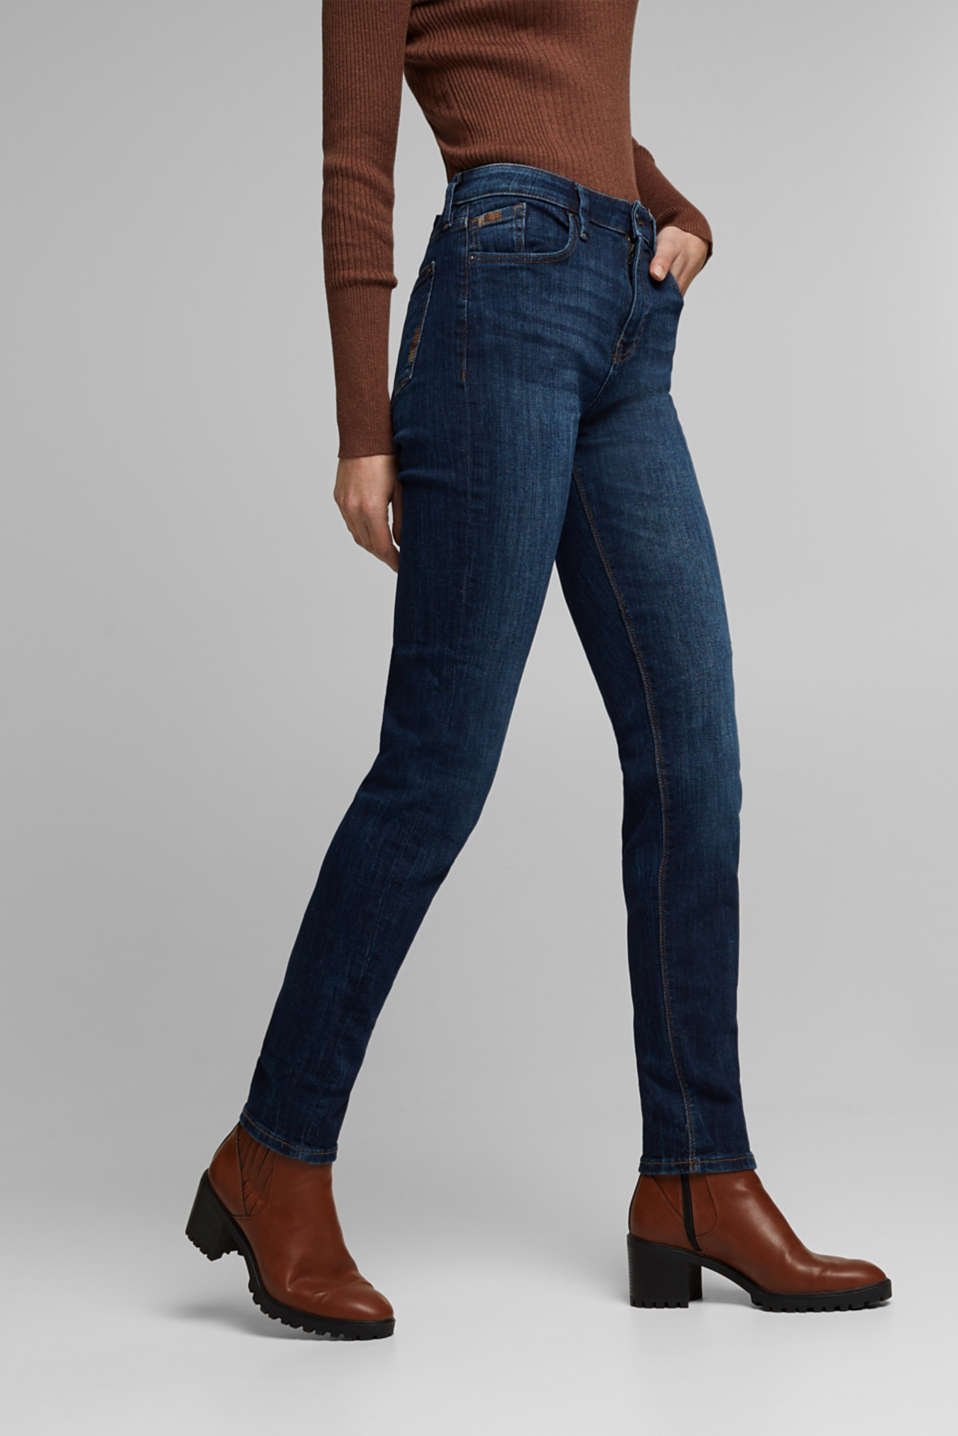 Esprit - Stretch jeans with decorative stitching